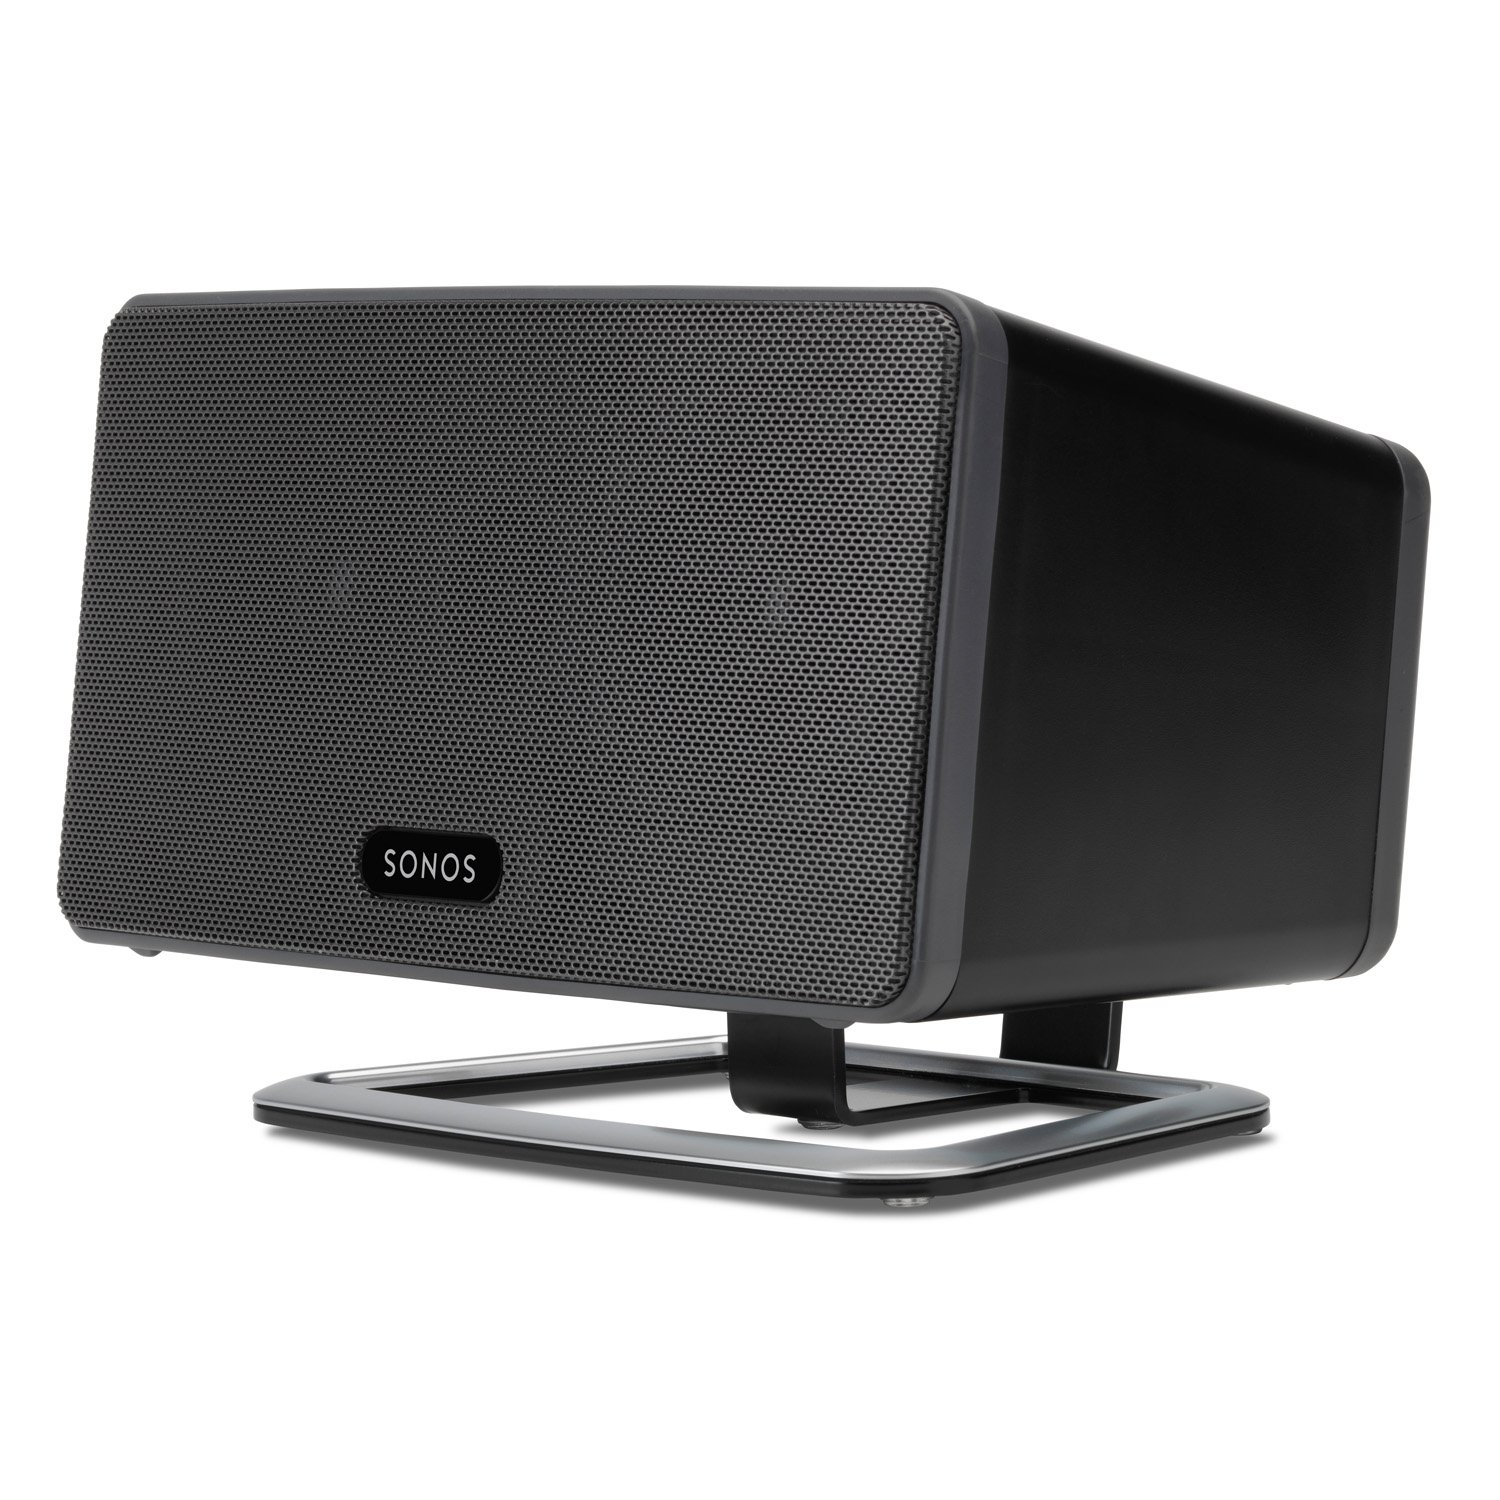 Flexson FLXP3DS1021 Desk Stand for Sonos Play 3 Speaker, Black Erikson Consumer Multimedia (A division of JAM Industries)